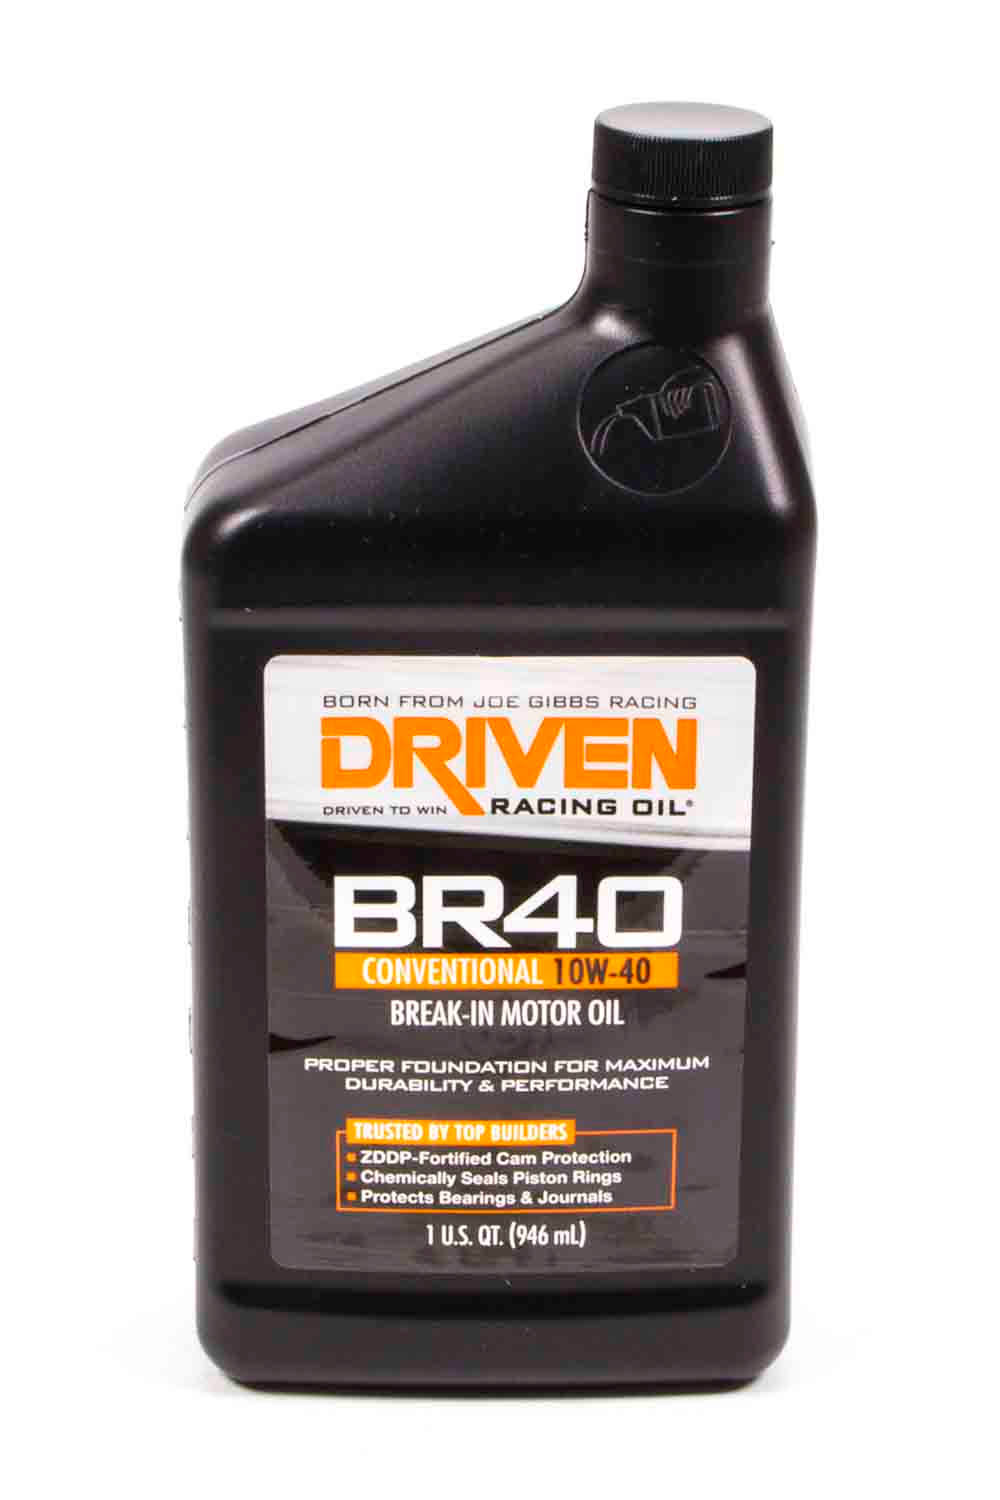 Driven Racing Oil Br40 10W-40 Break-In Motor Oil - 946ml